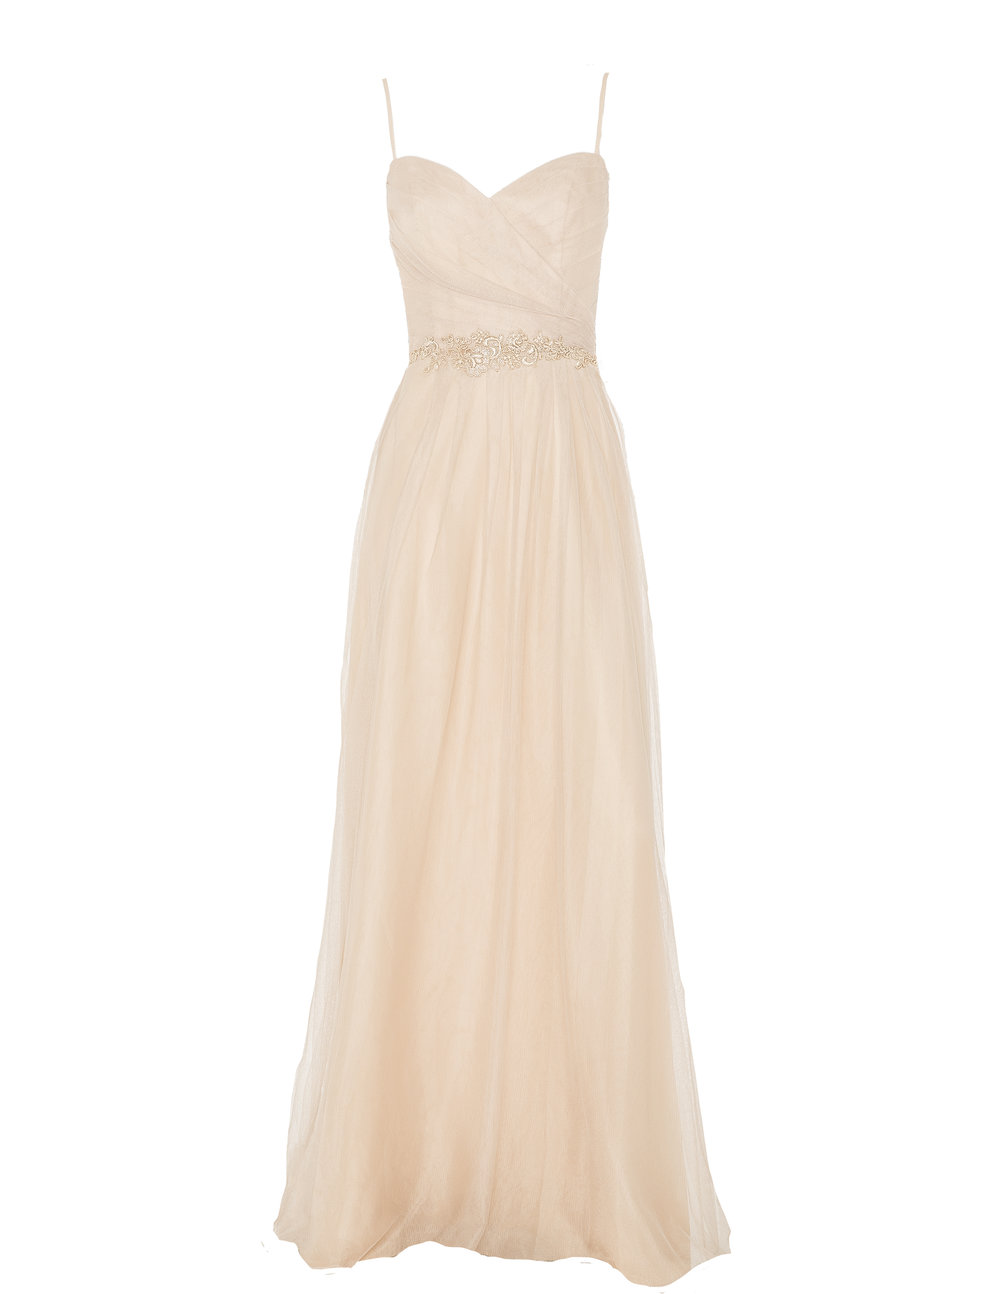 Monique Lhuillier 450503 Sand Tulle